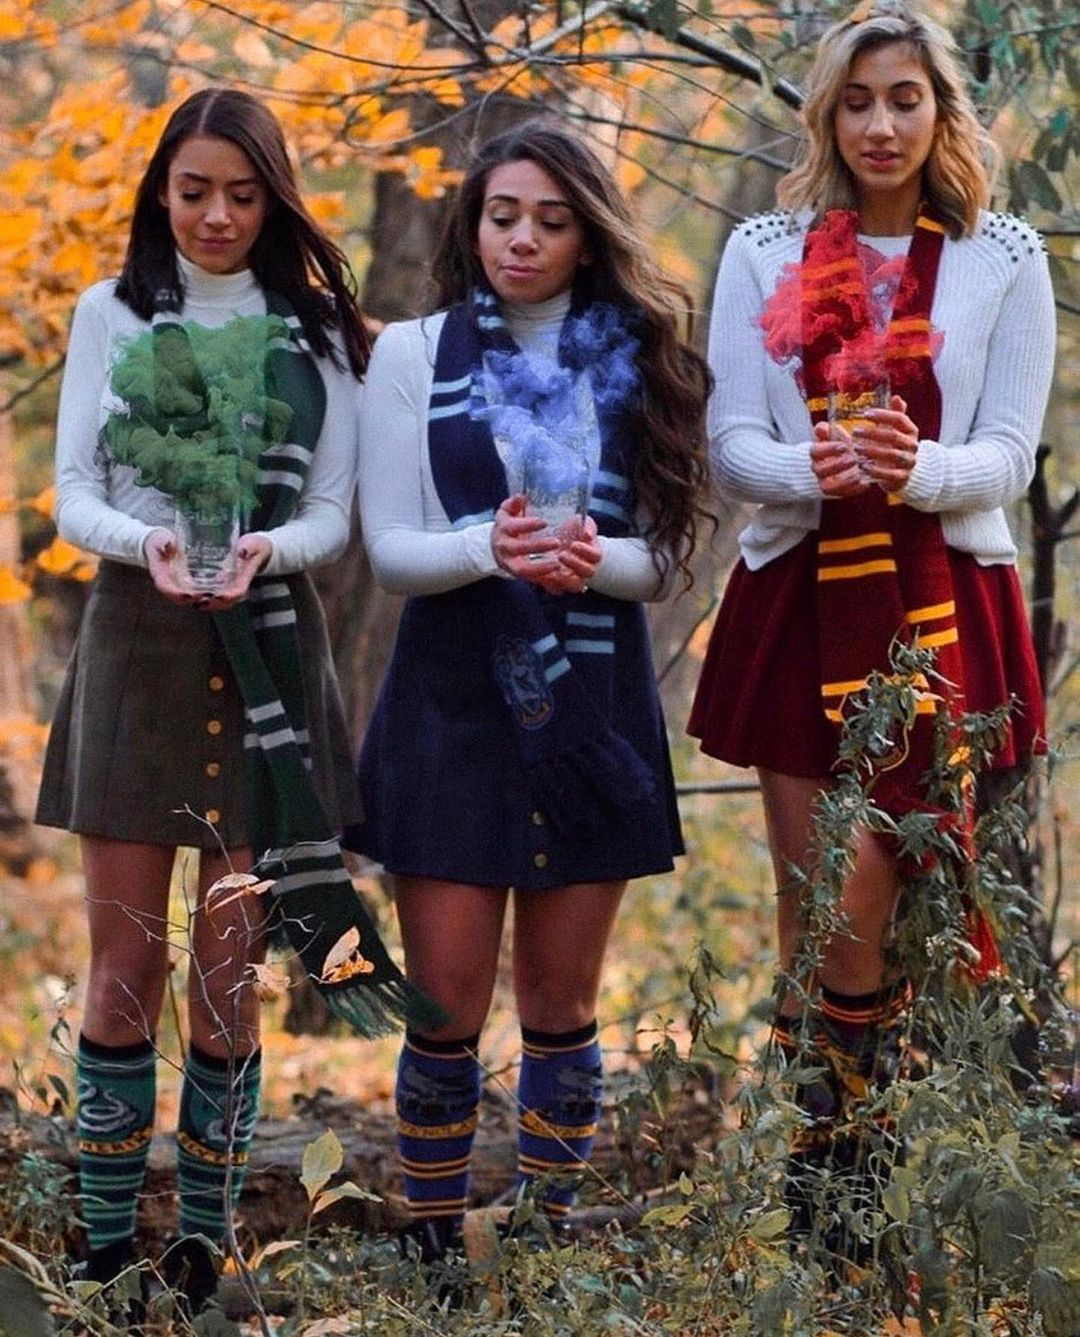 Harry Potter Halloween costumes for 3